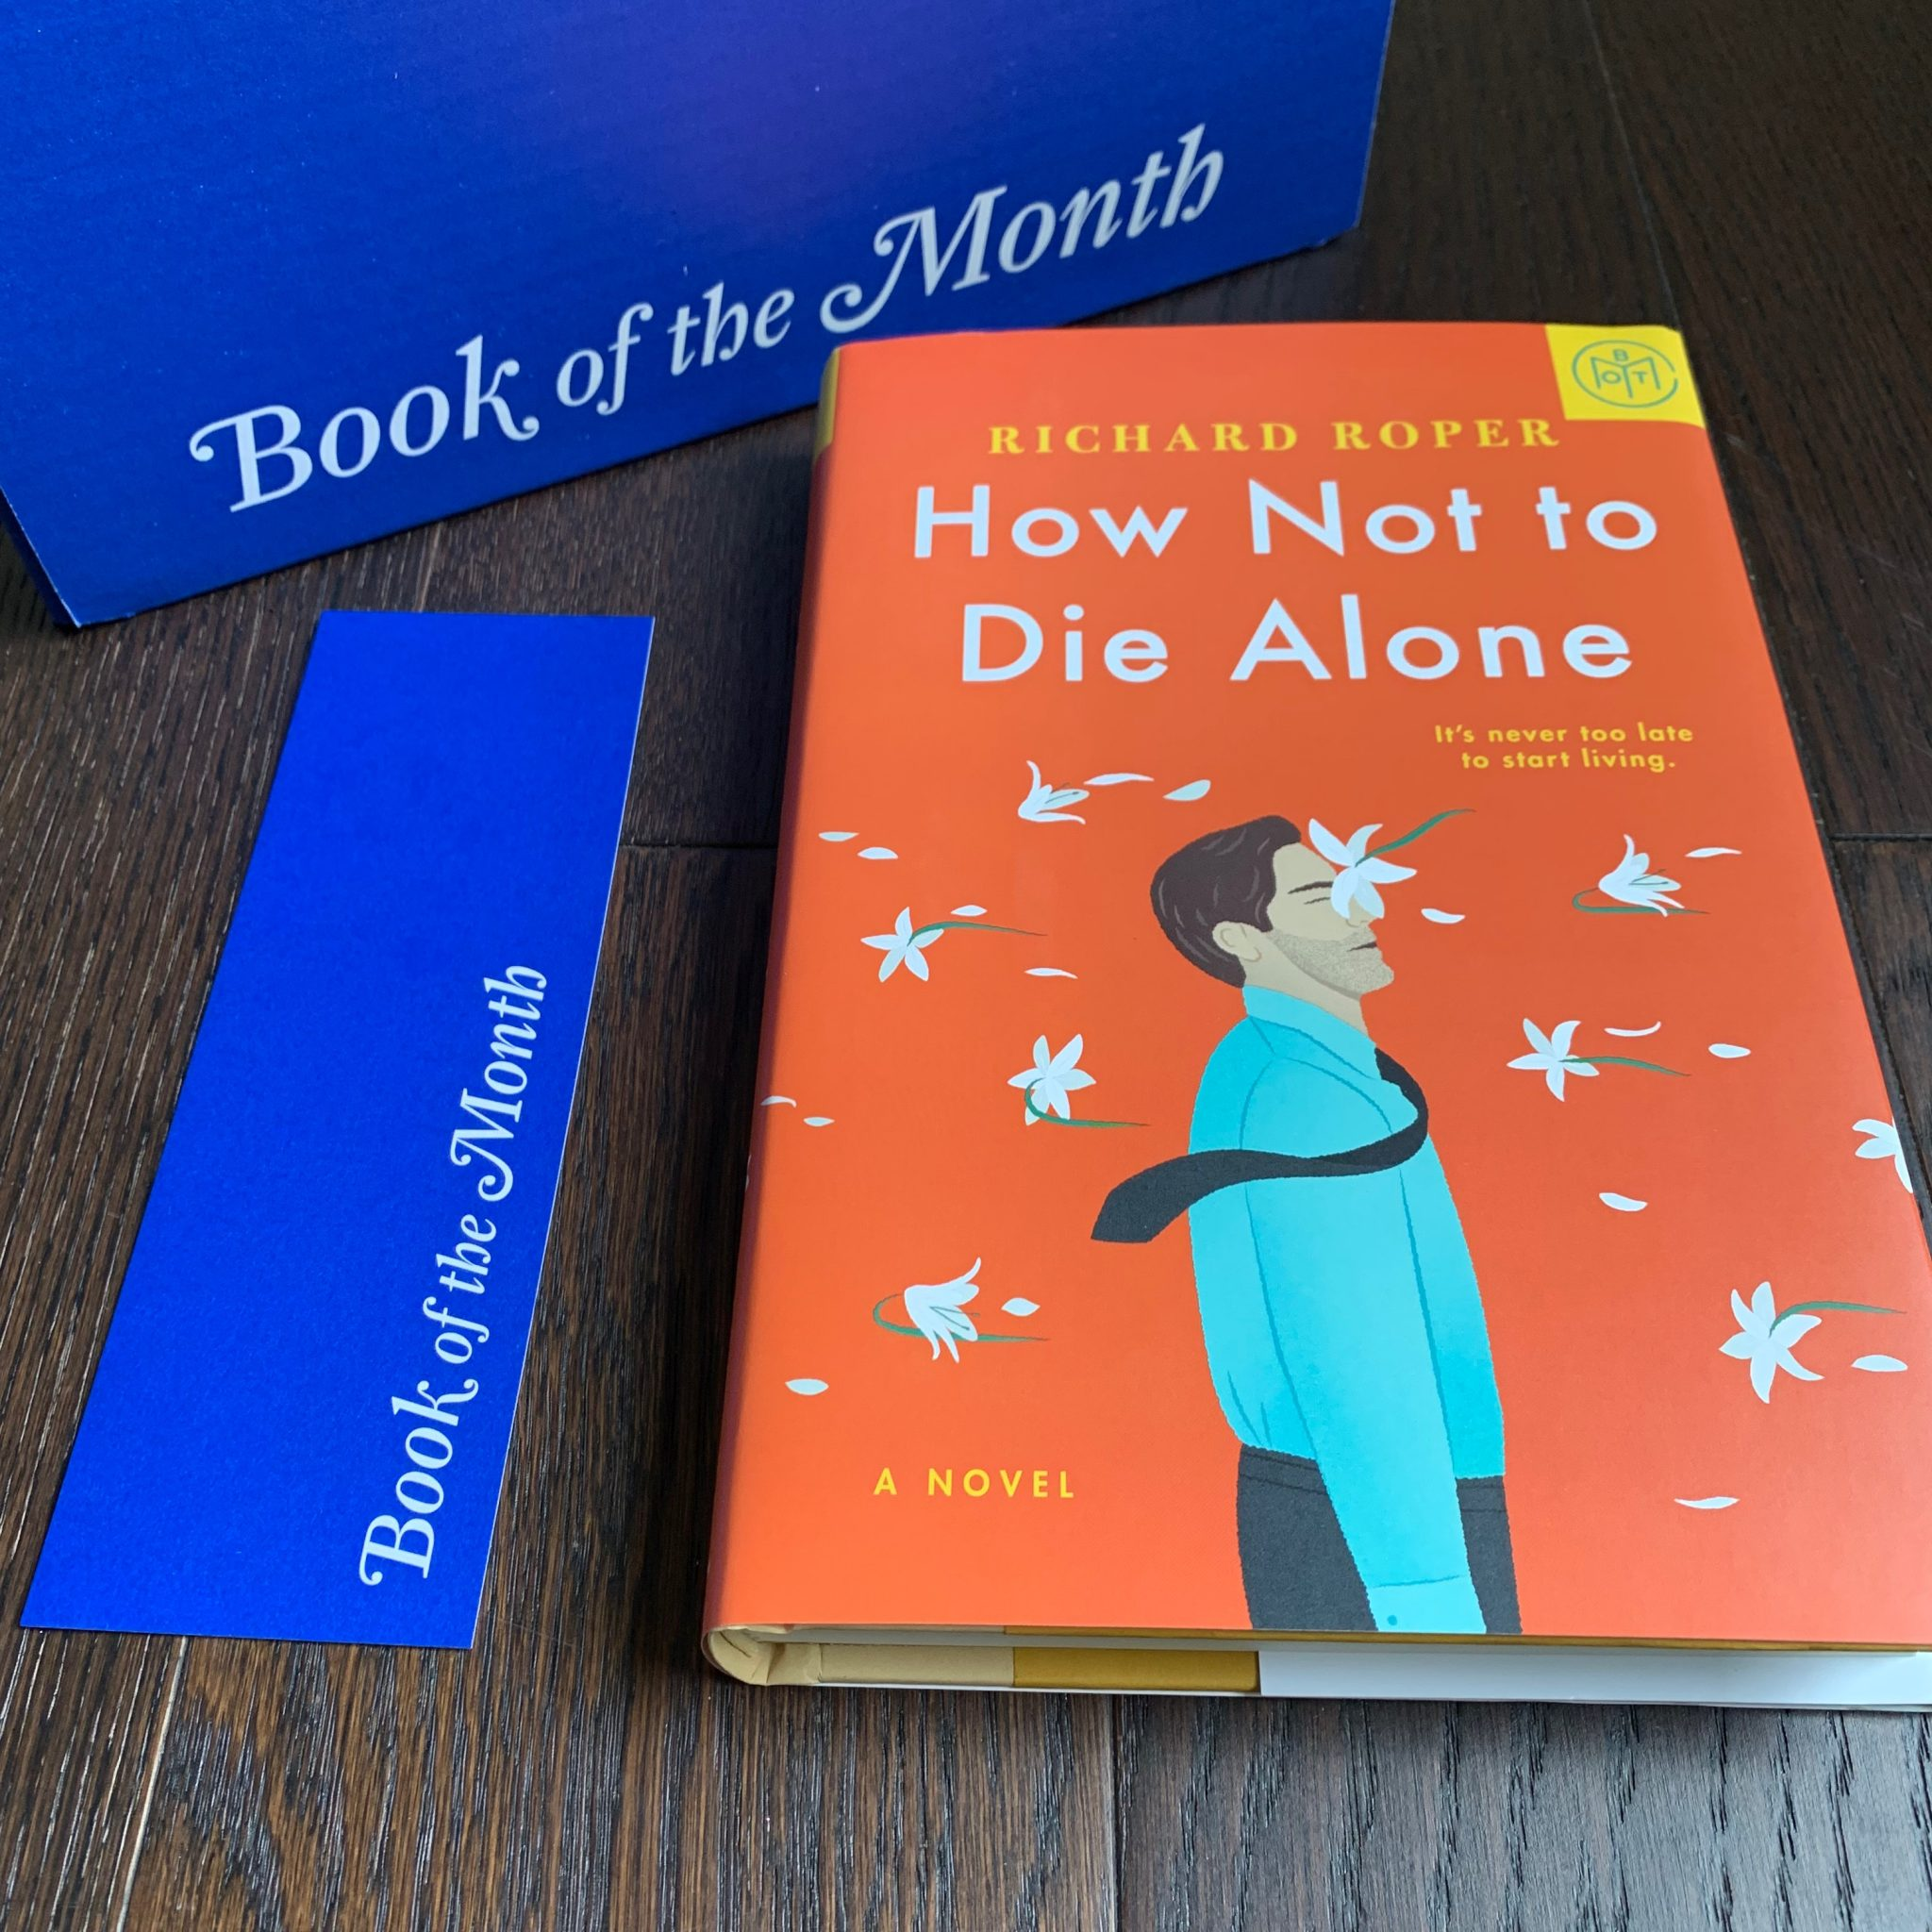 Book of the Month Review + Coupon Code – May 2019